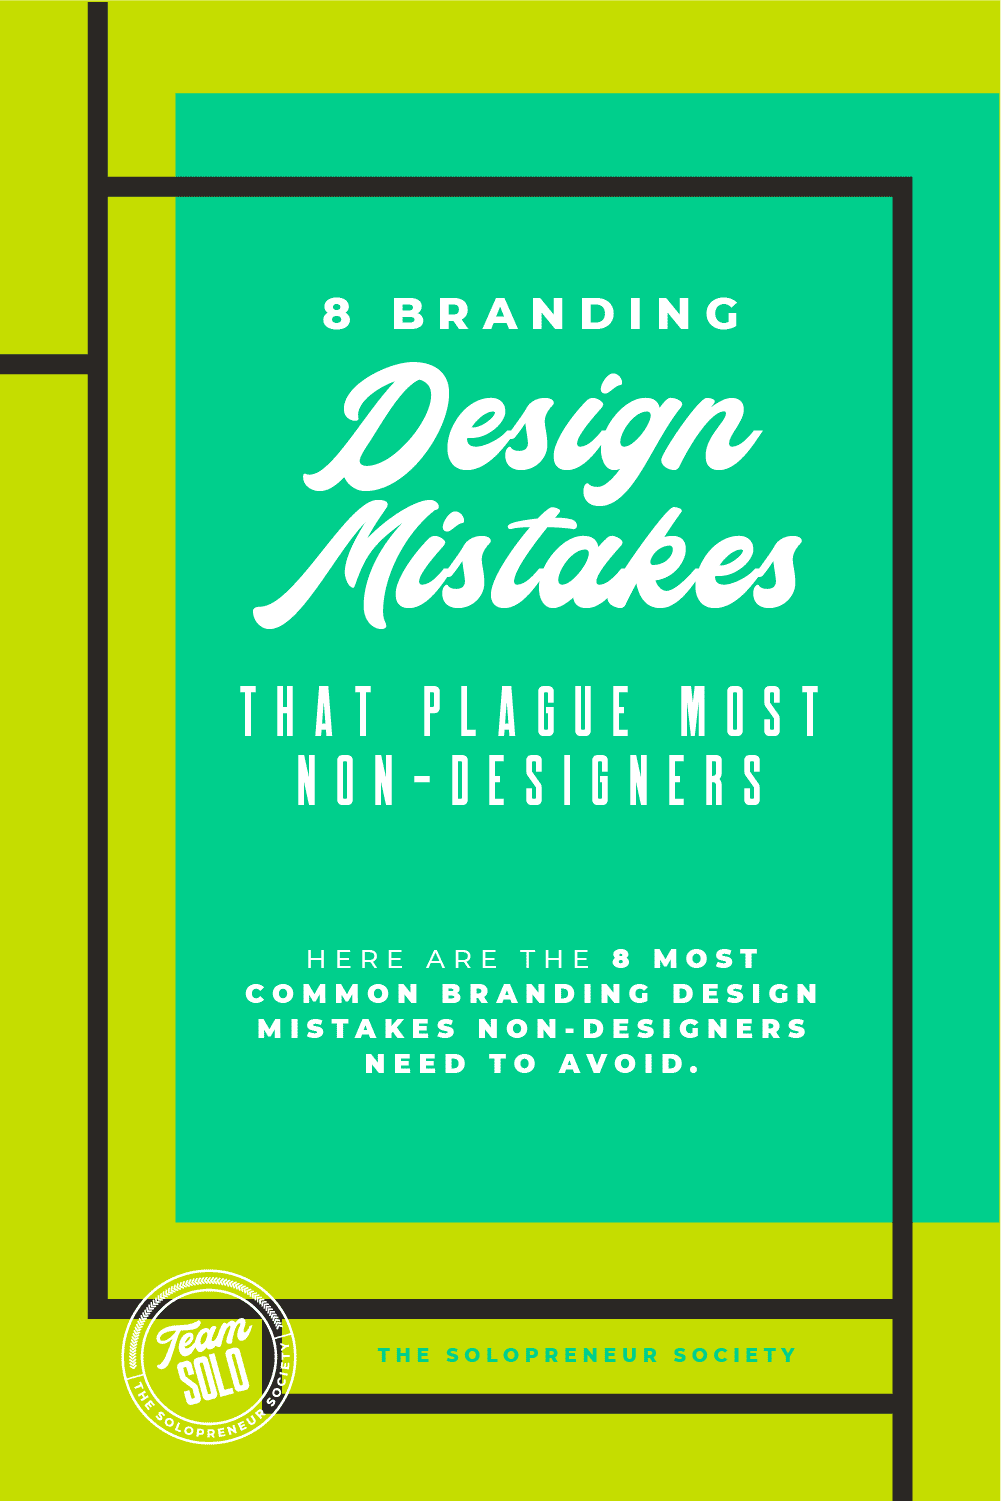 8 Branding Mistakes That Plague Most Non-Designers